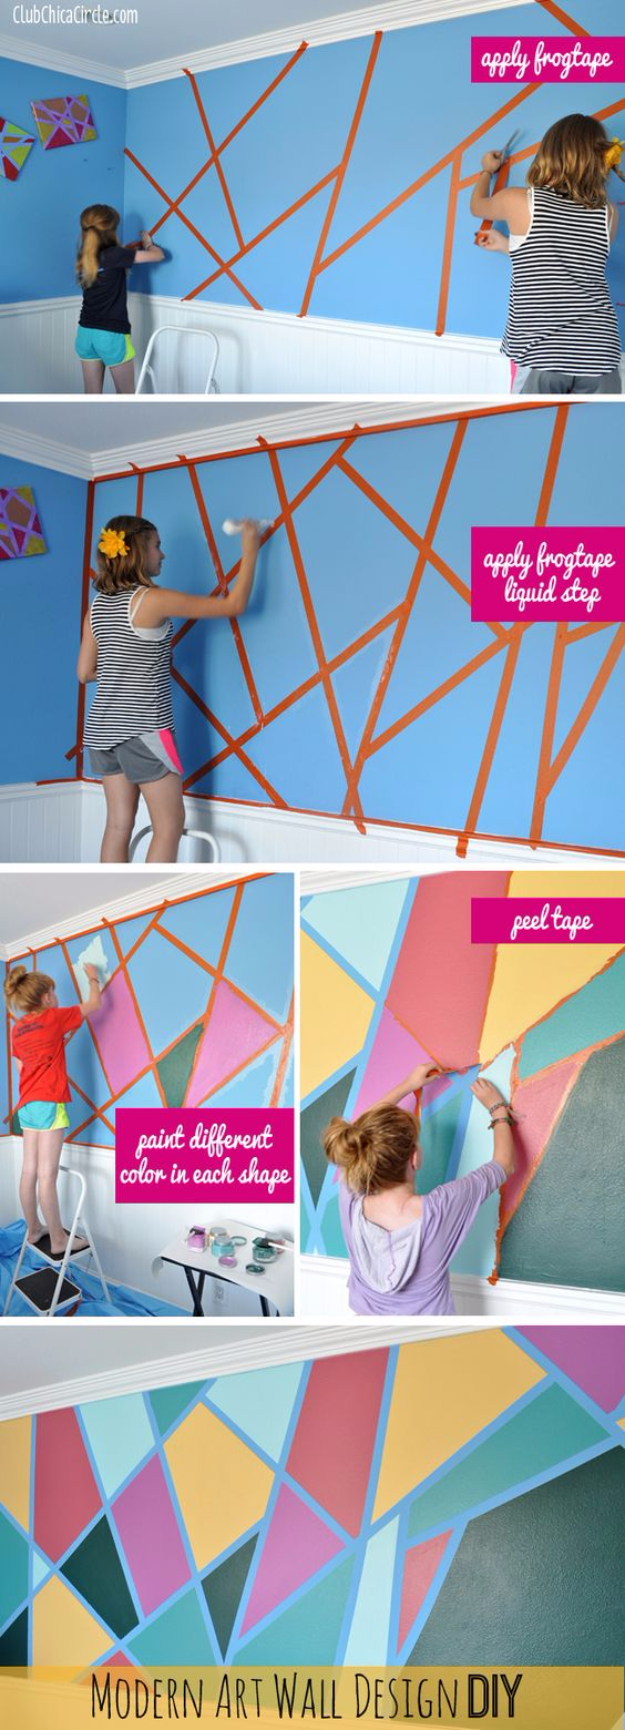 34 cool ways to paint walls diy projects for teens. Black Bedroom Furniture Sets. Home Design Ideas